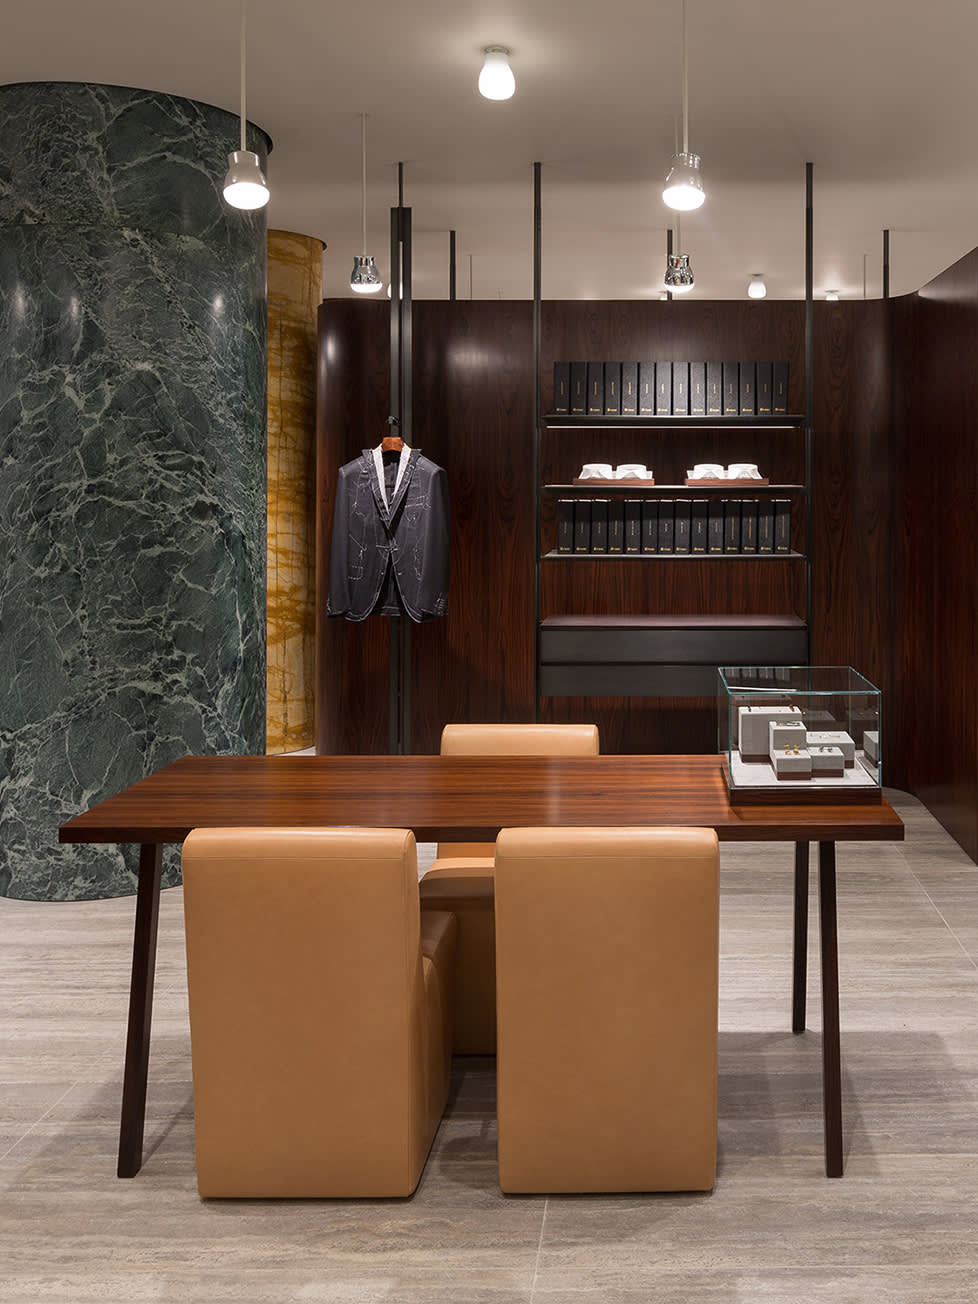 The VIP room of a Brioni store